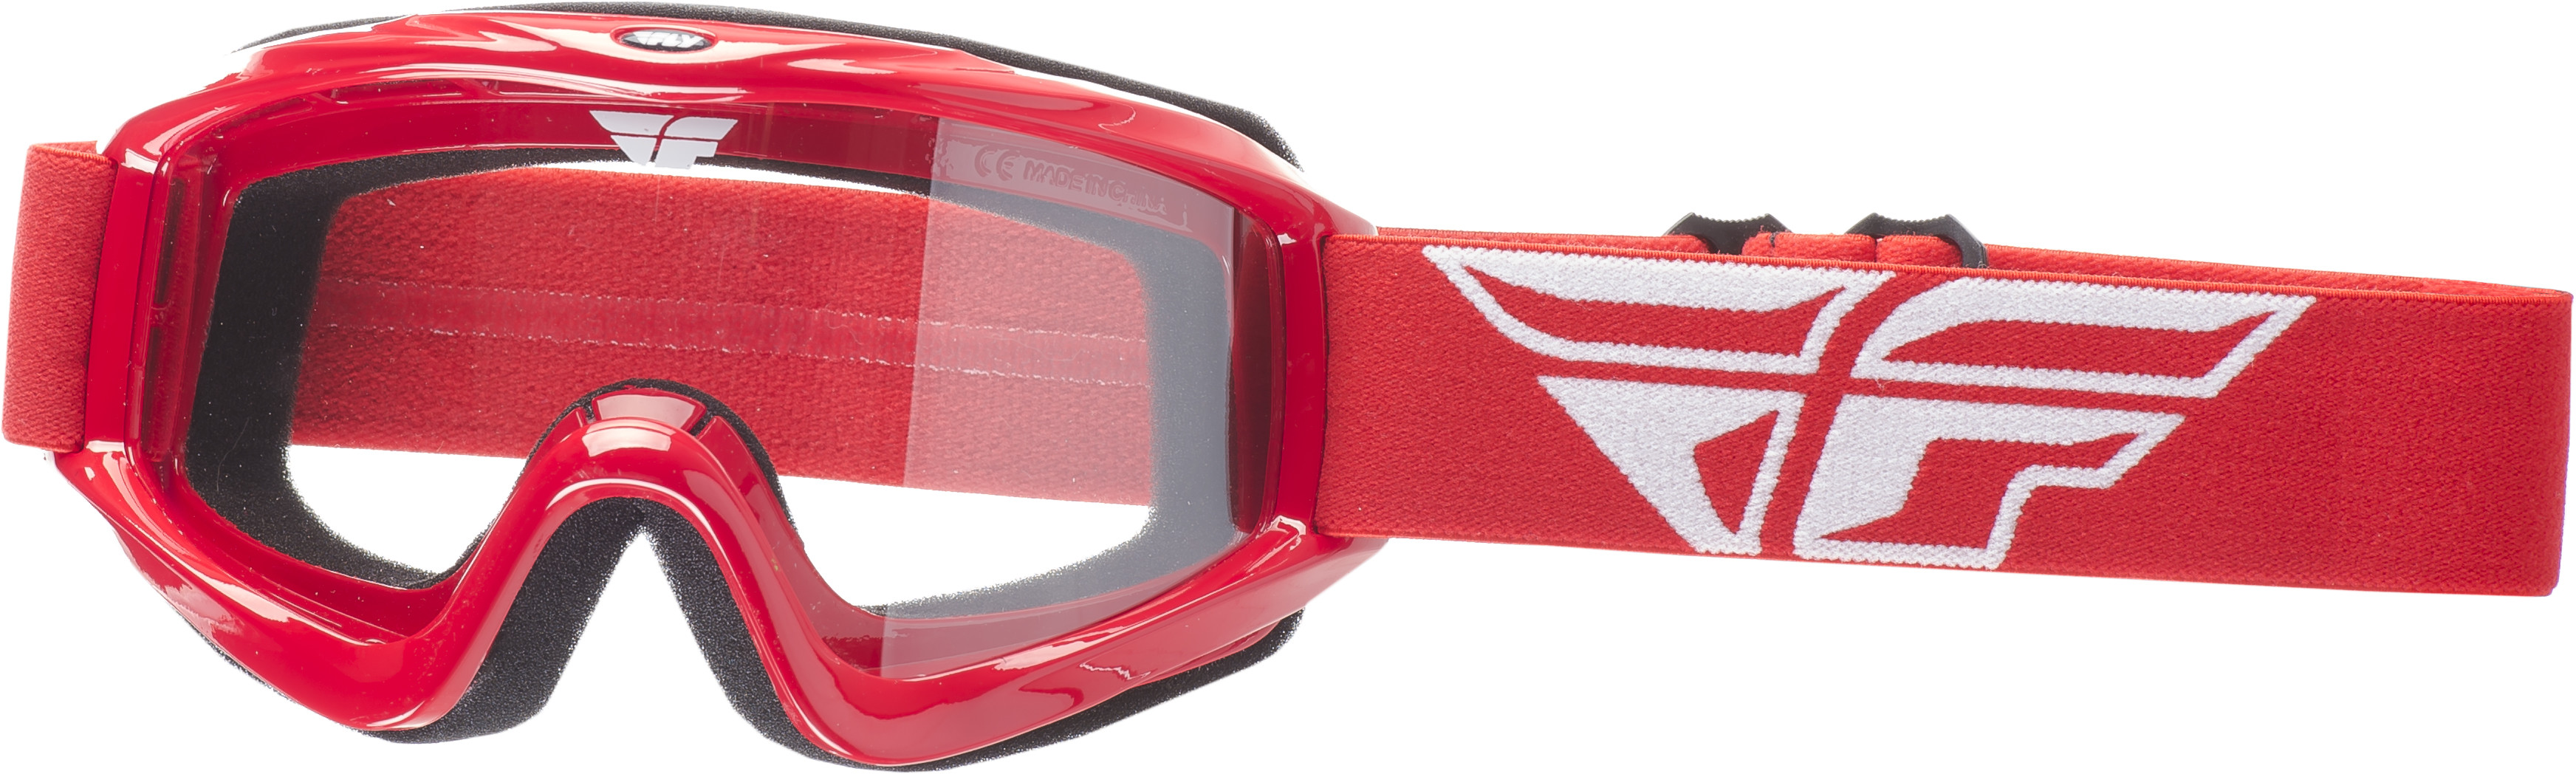 Focus Goggle Red W/ Clear Lens